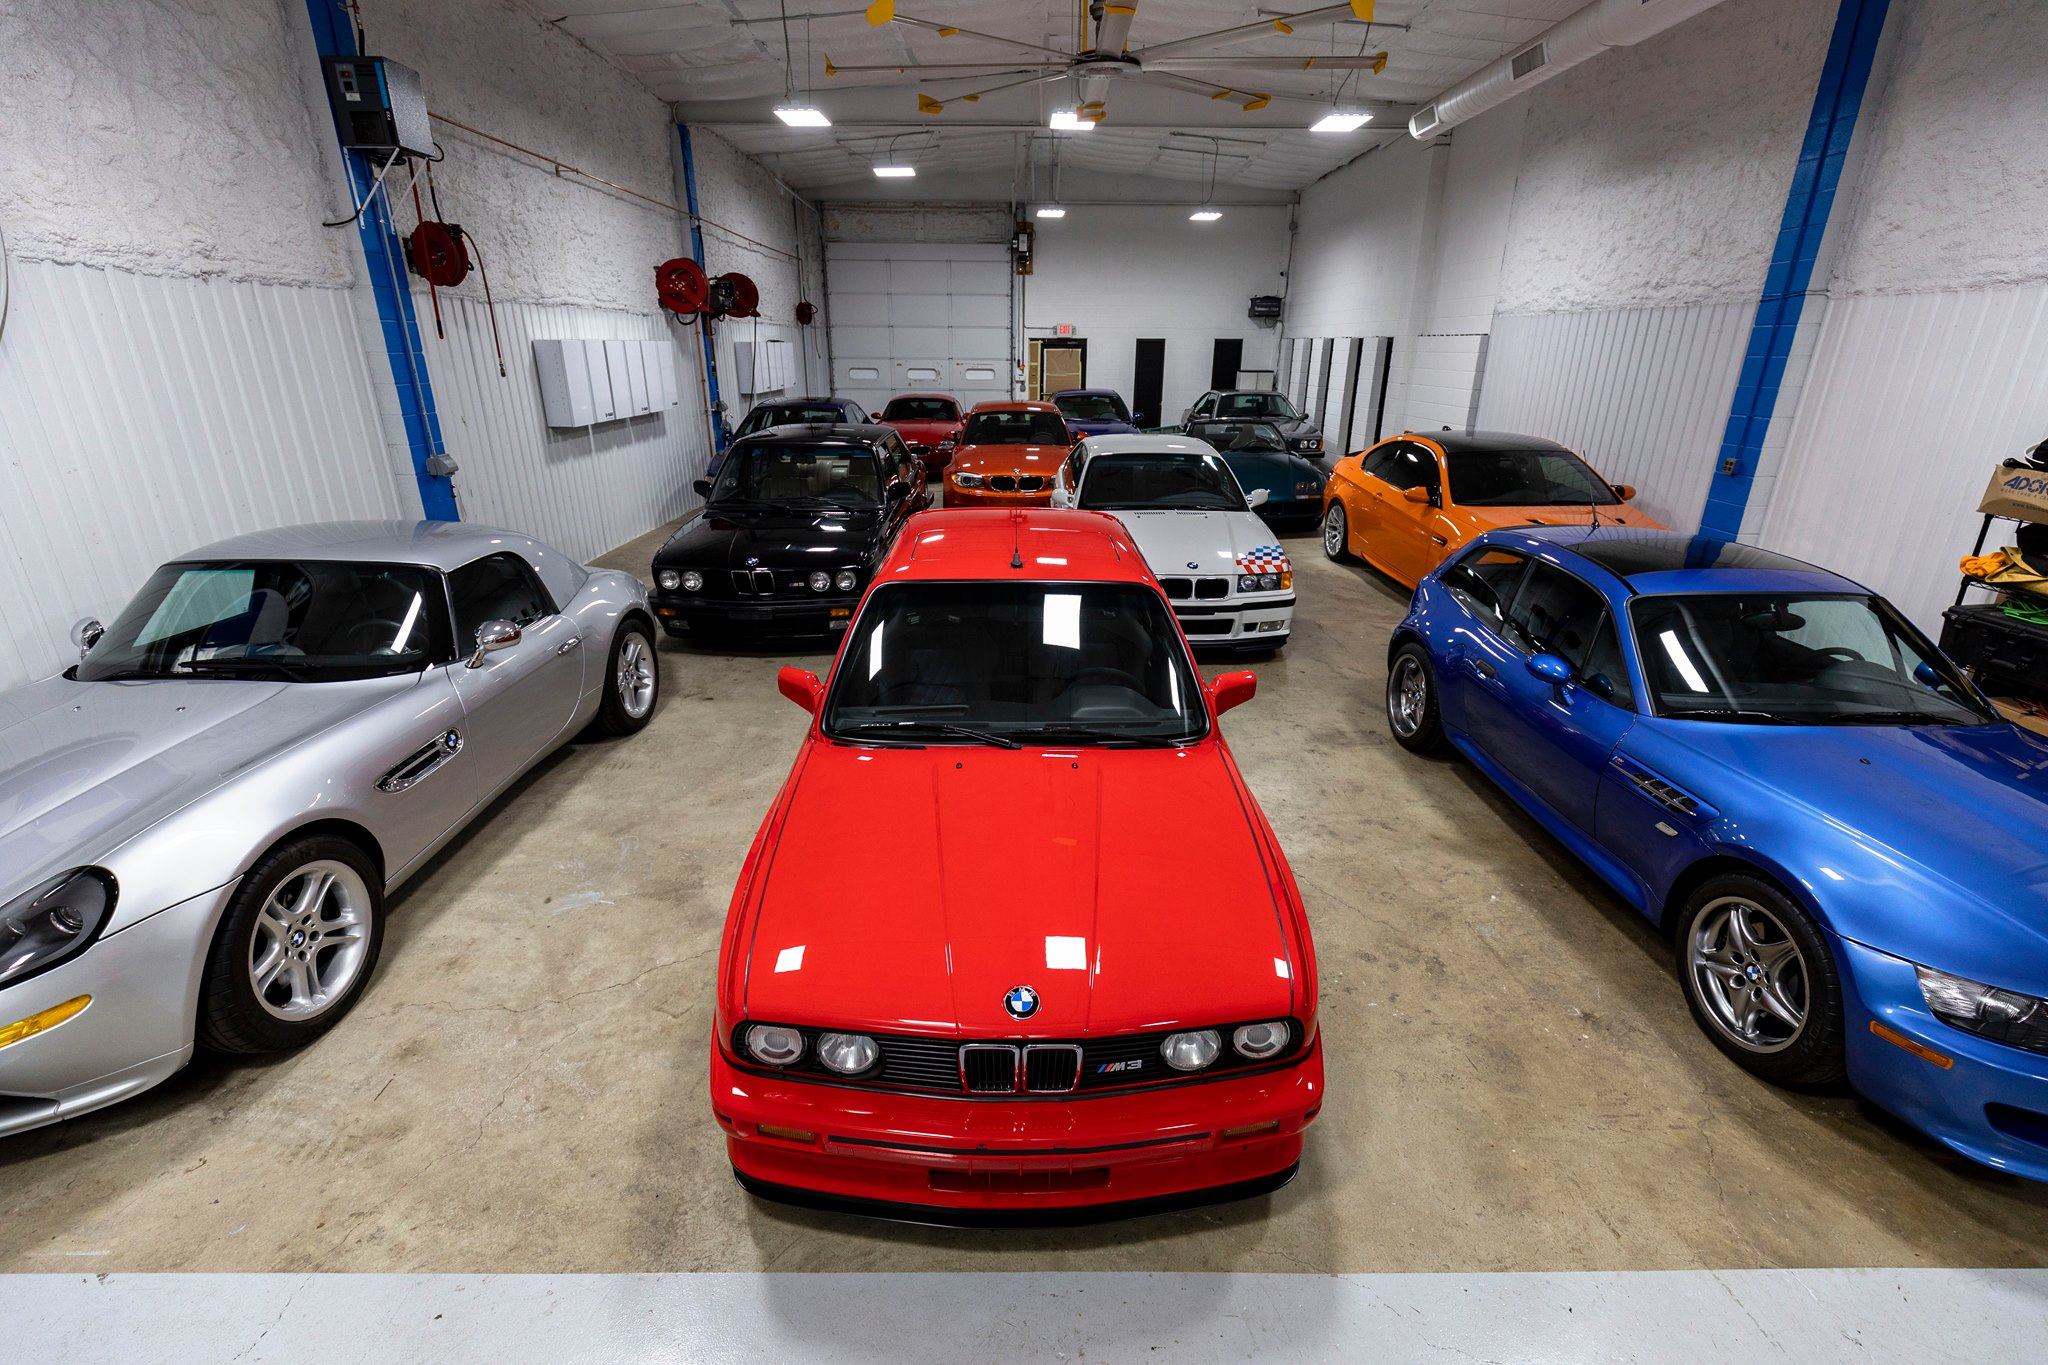 Paging all BMW fans: You're going to want to see this collection. | Enthusiast Auto Group photos